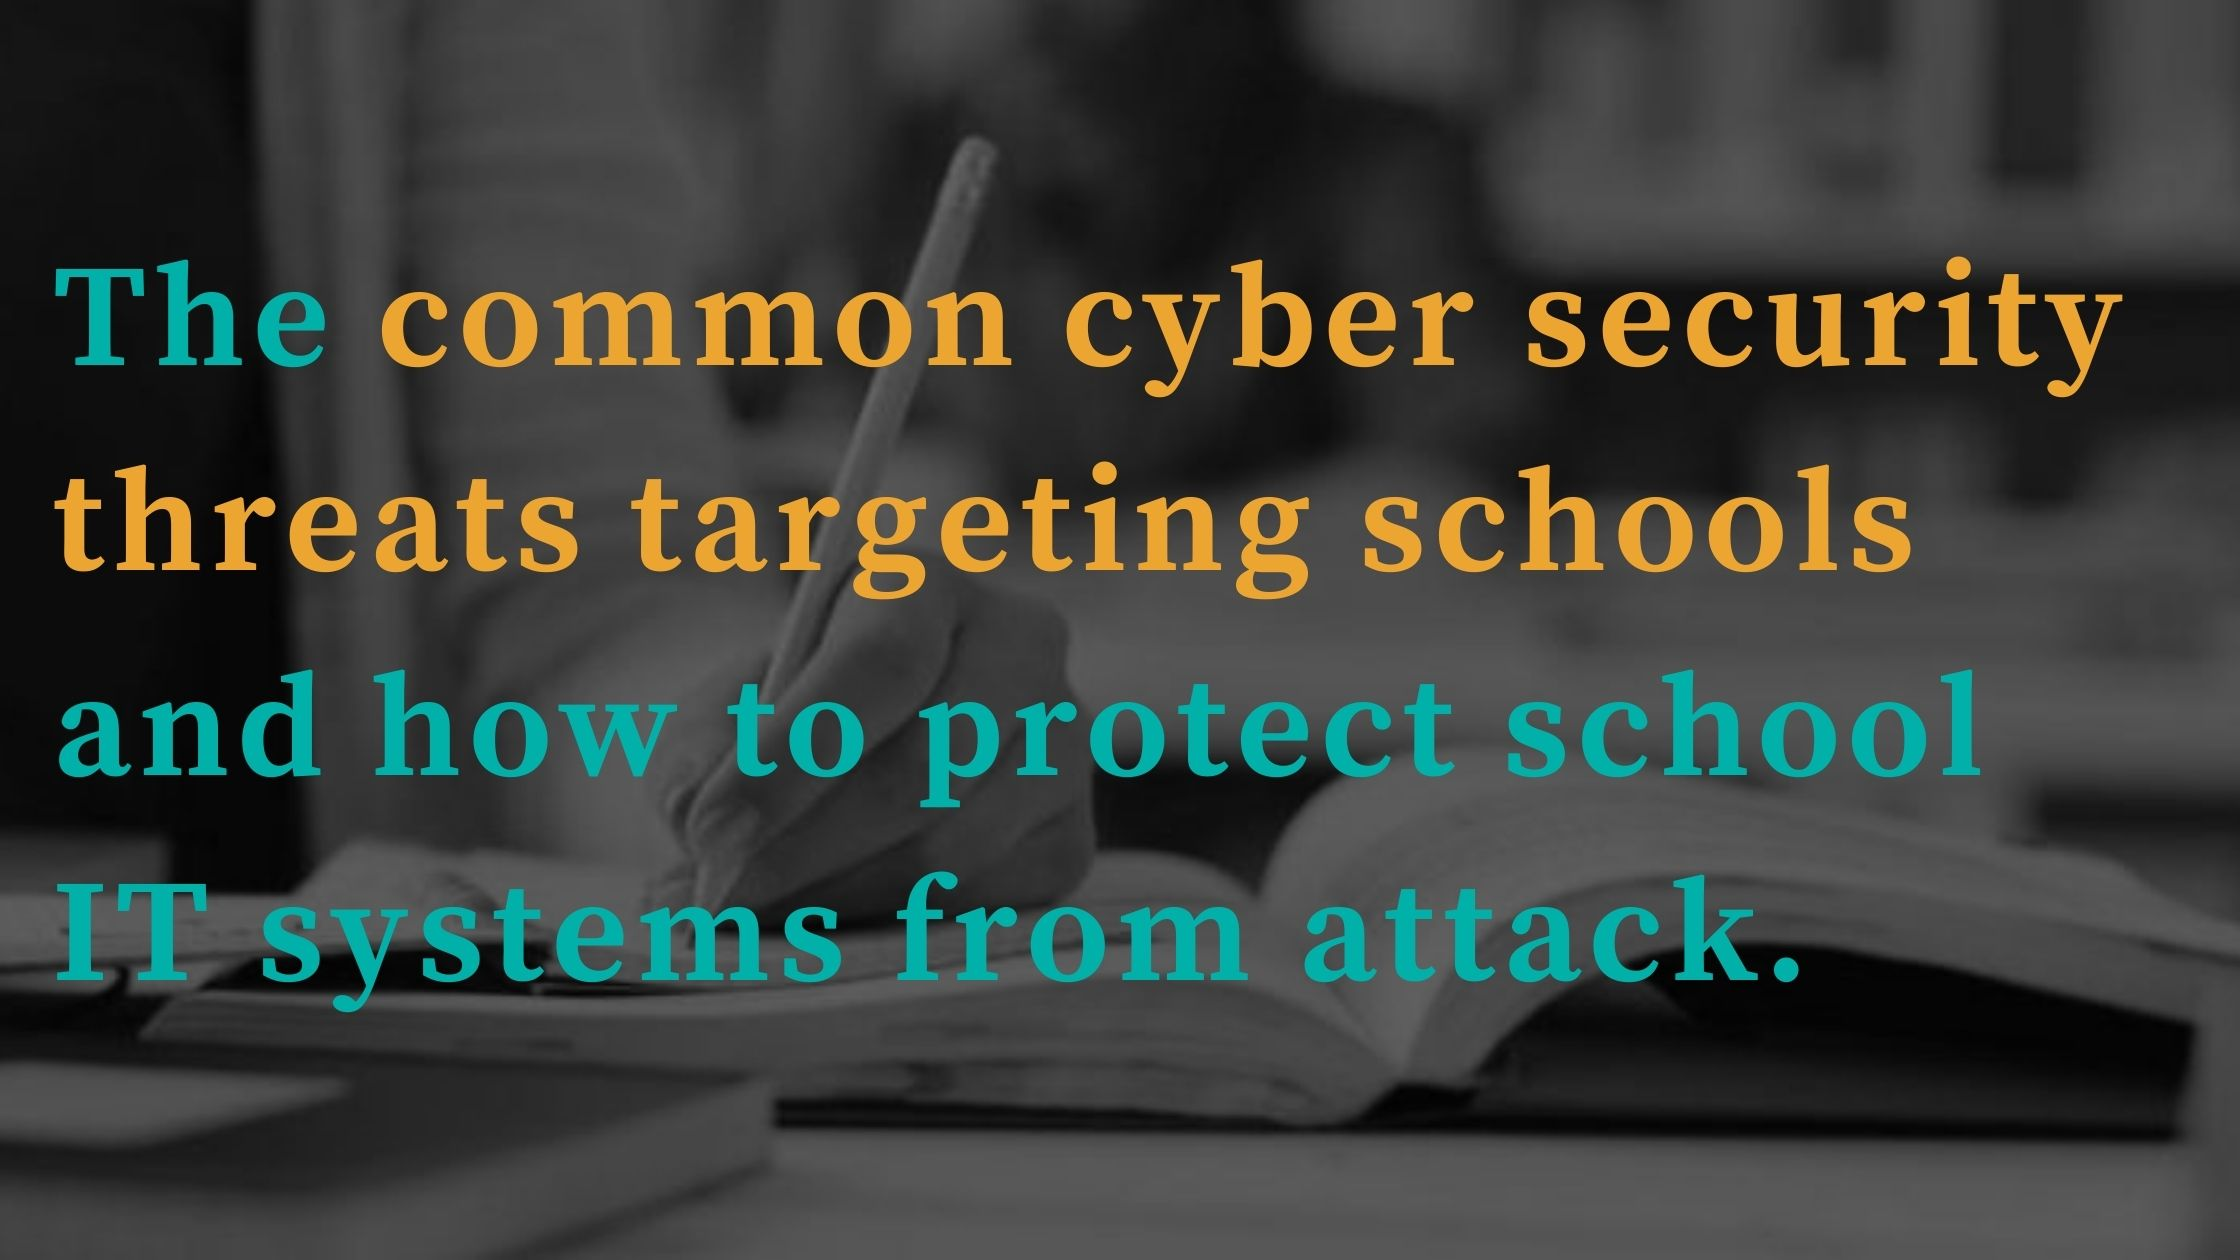 The common cyber threats targeting schools and how to protect your IT systems from attack